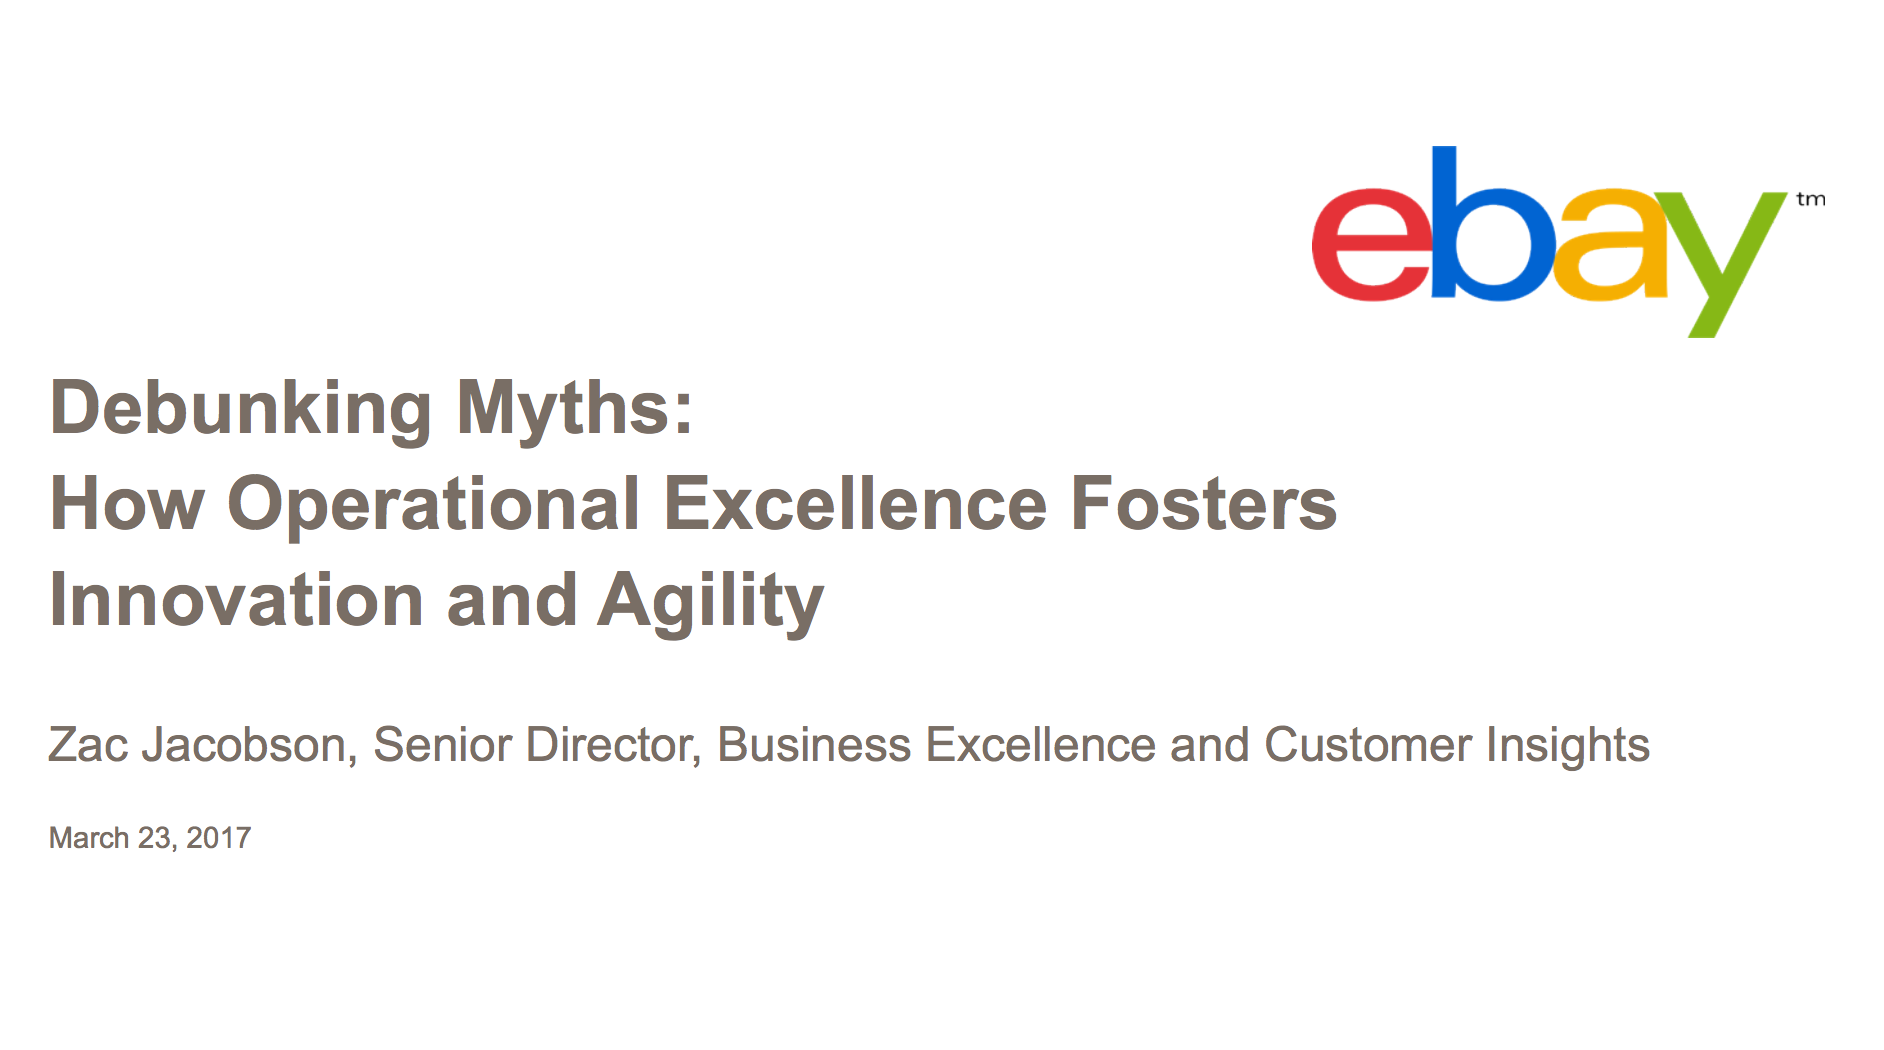 Debunking Myths: How Operational Excellence Forsters Innovation & Agility